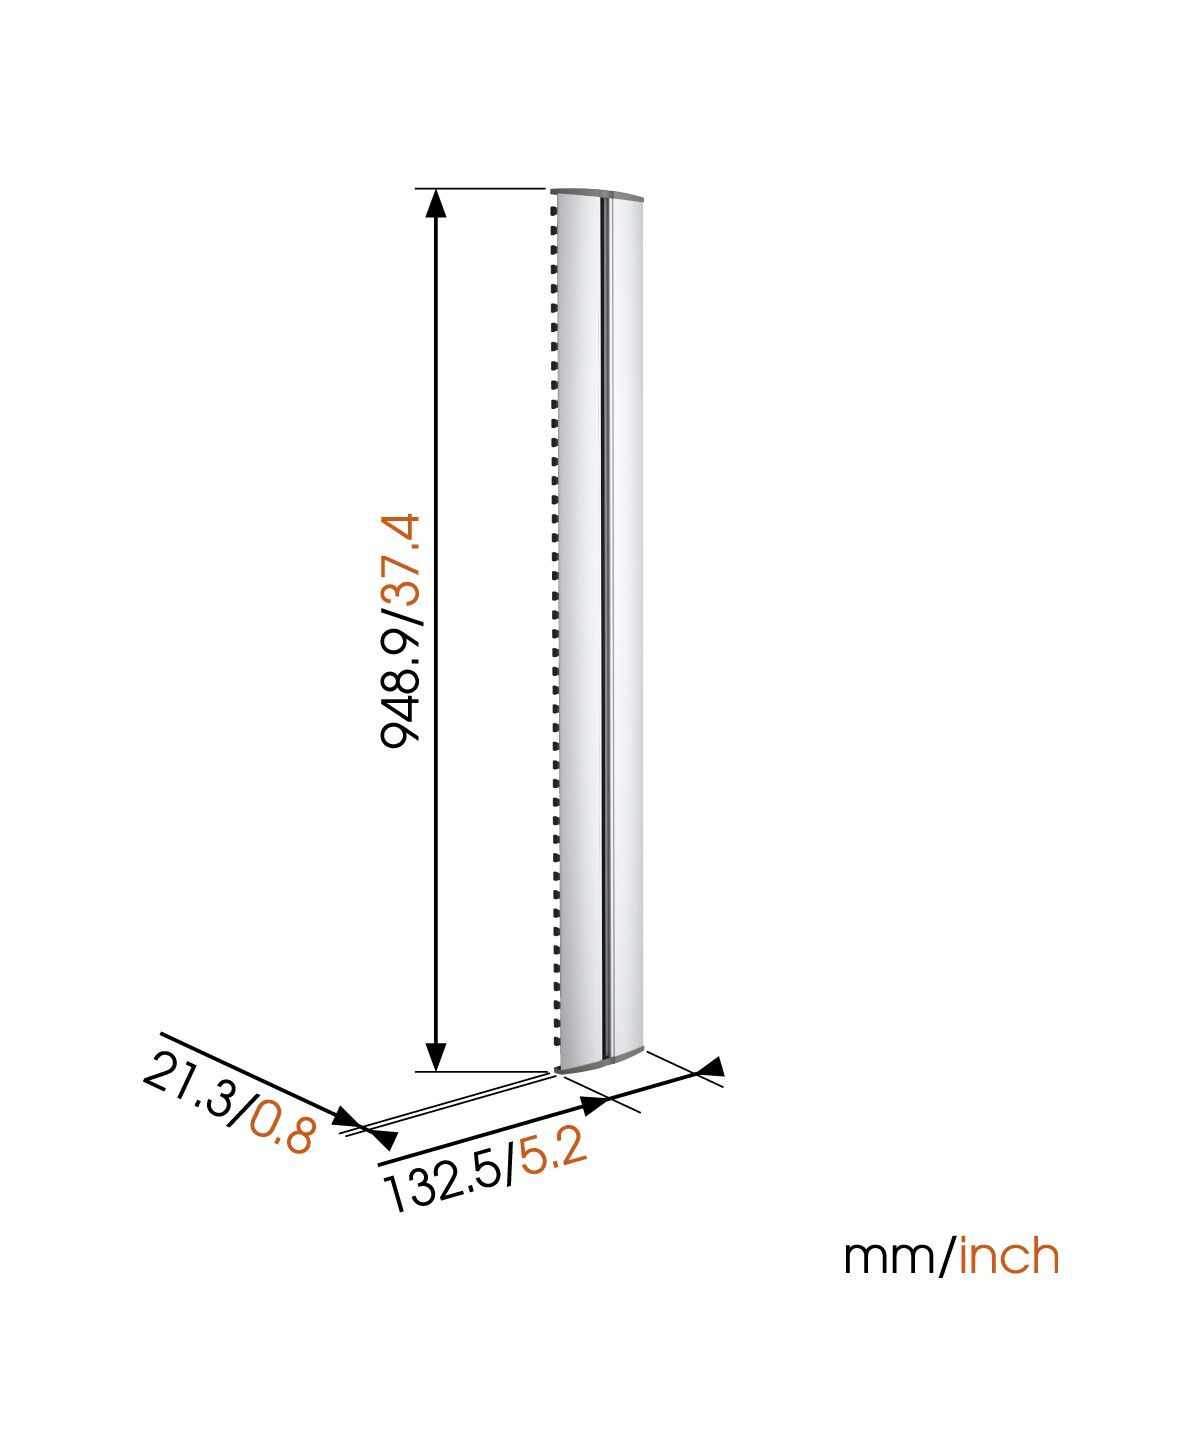 Vogel's CABLE 10 L Cable Column - Max. number of cables to hold: Up to 10 cables - Length: 94 cm - Dimensions